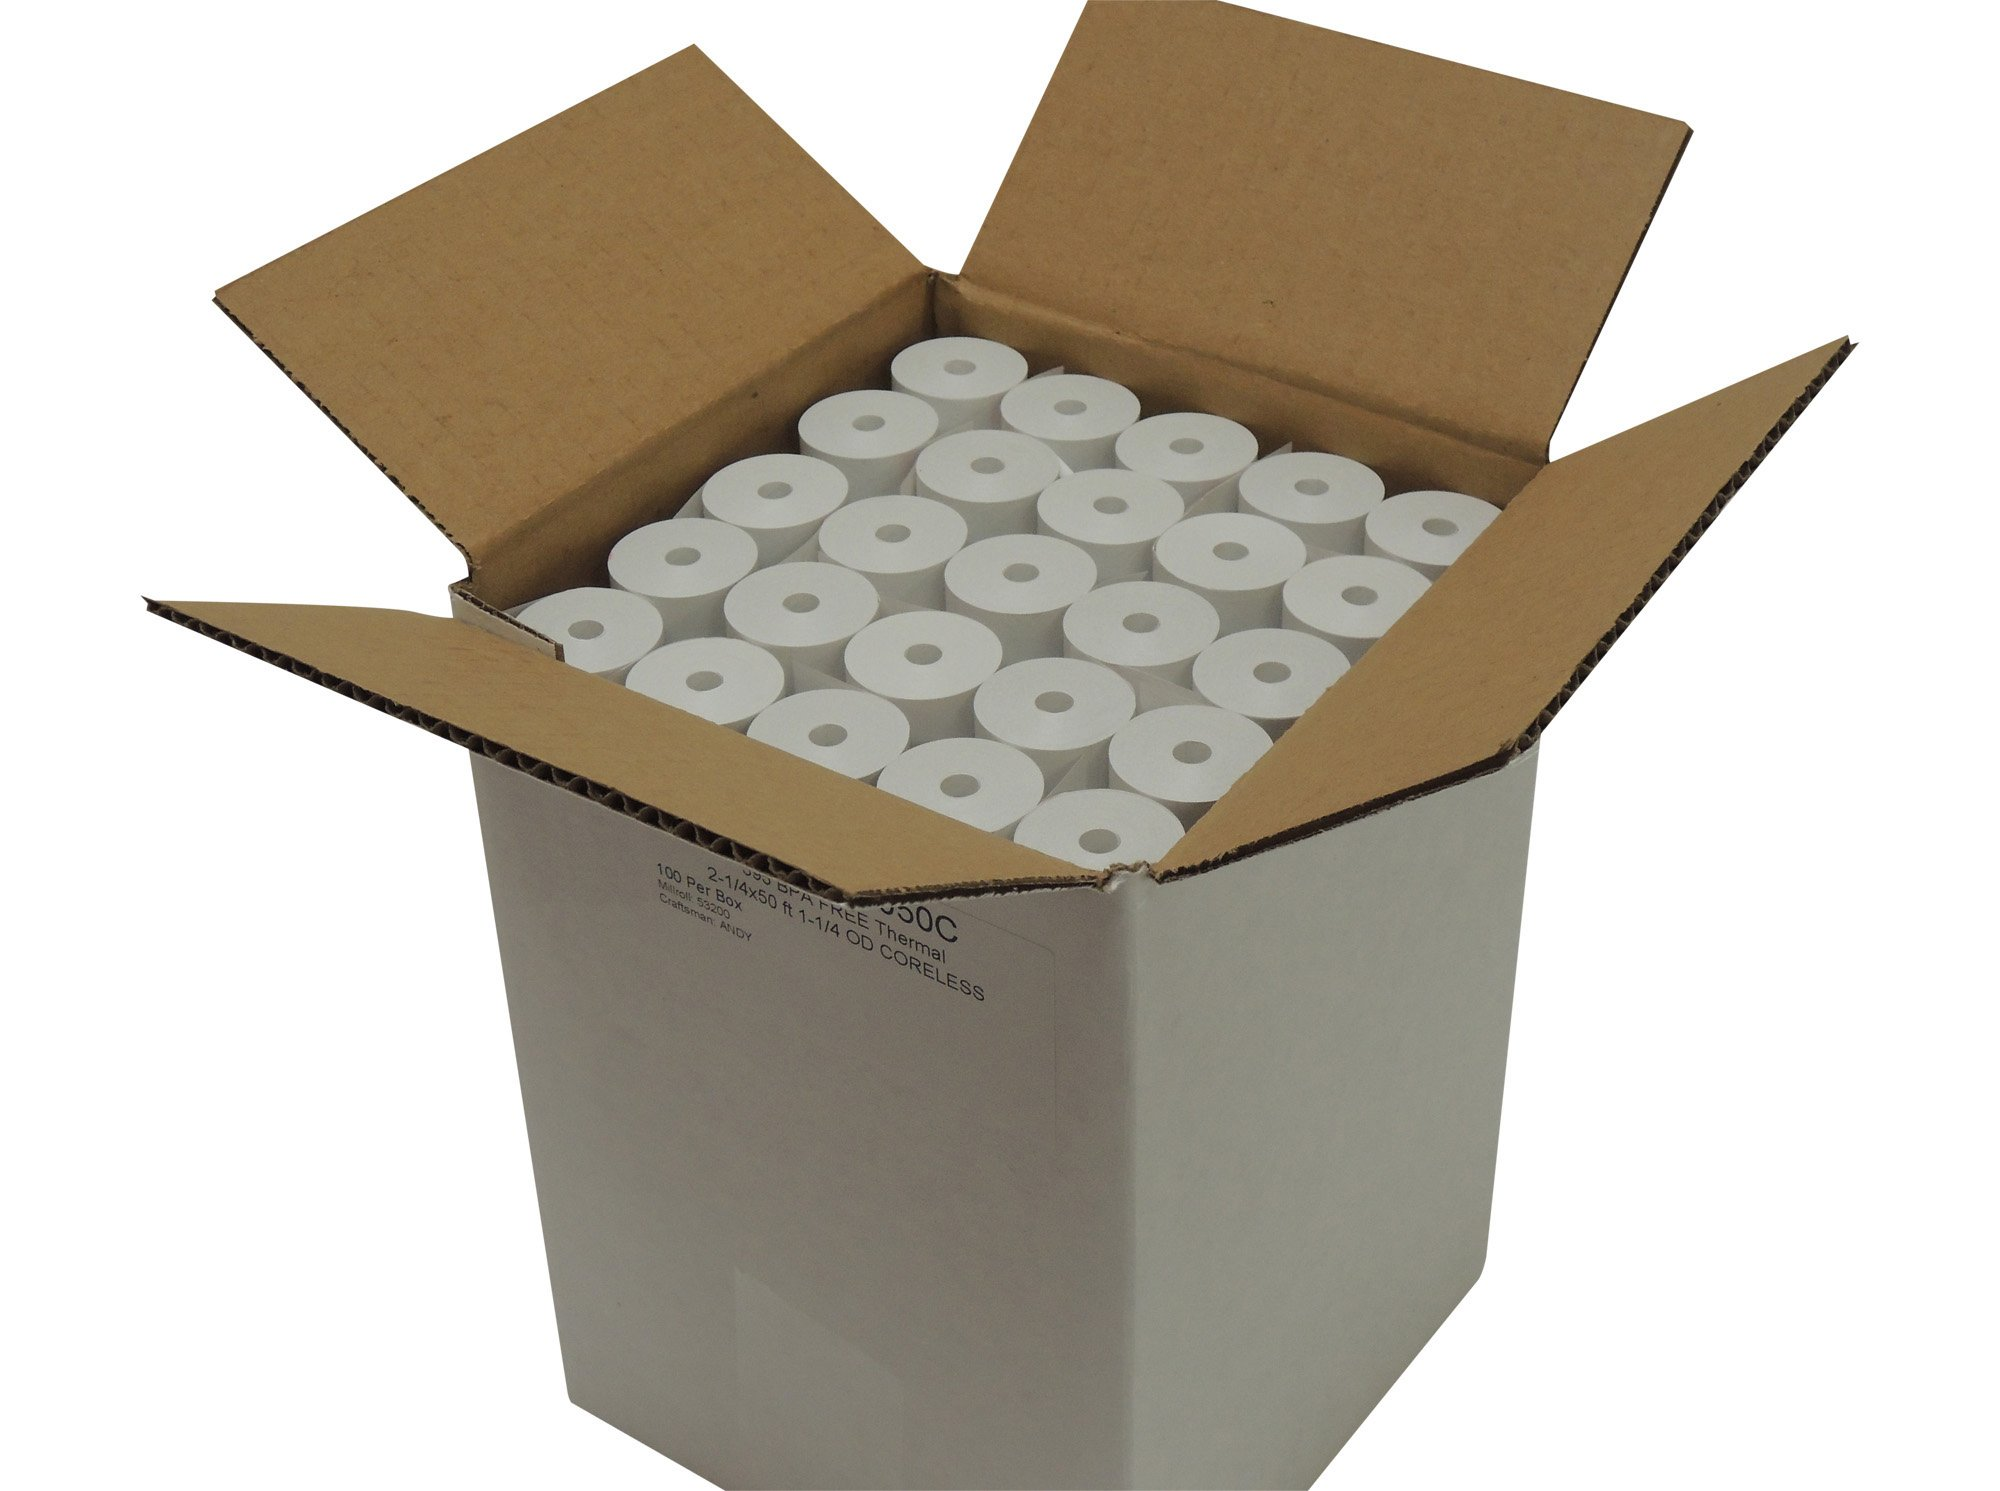 Thermal Paper 2-1/4'' x 50 ft, 1.25'' / 30mm Diameter, CORELESS, BPA Free, 100 Rolls by POS1 (Image #1)